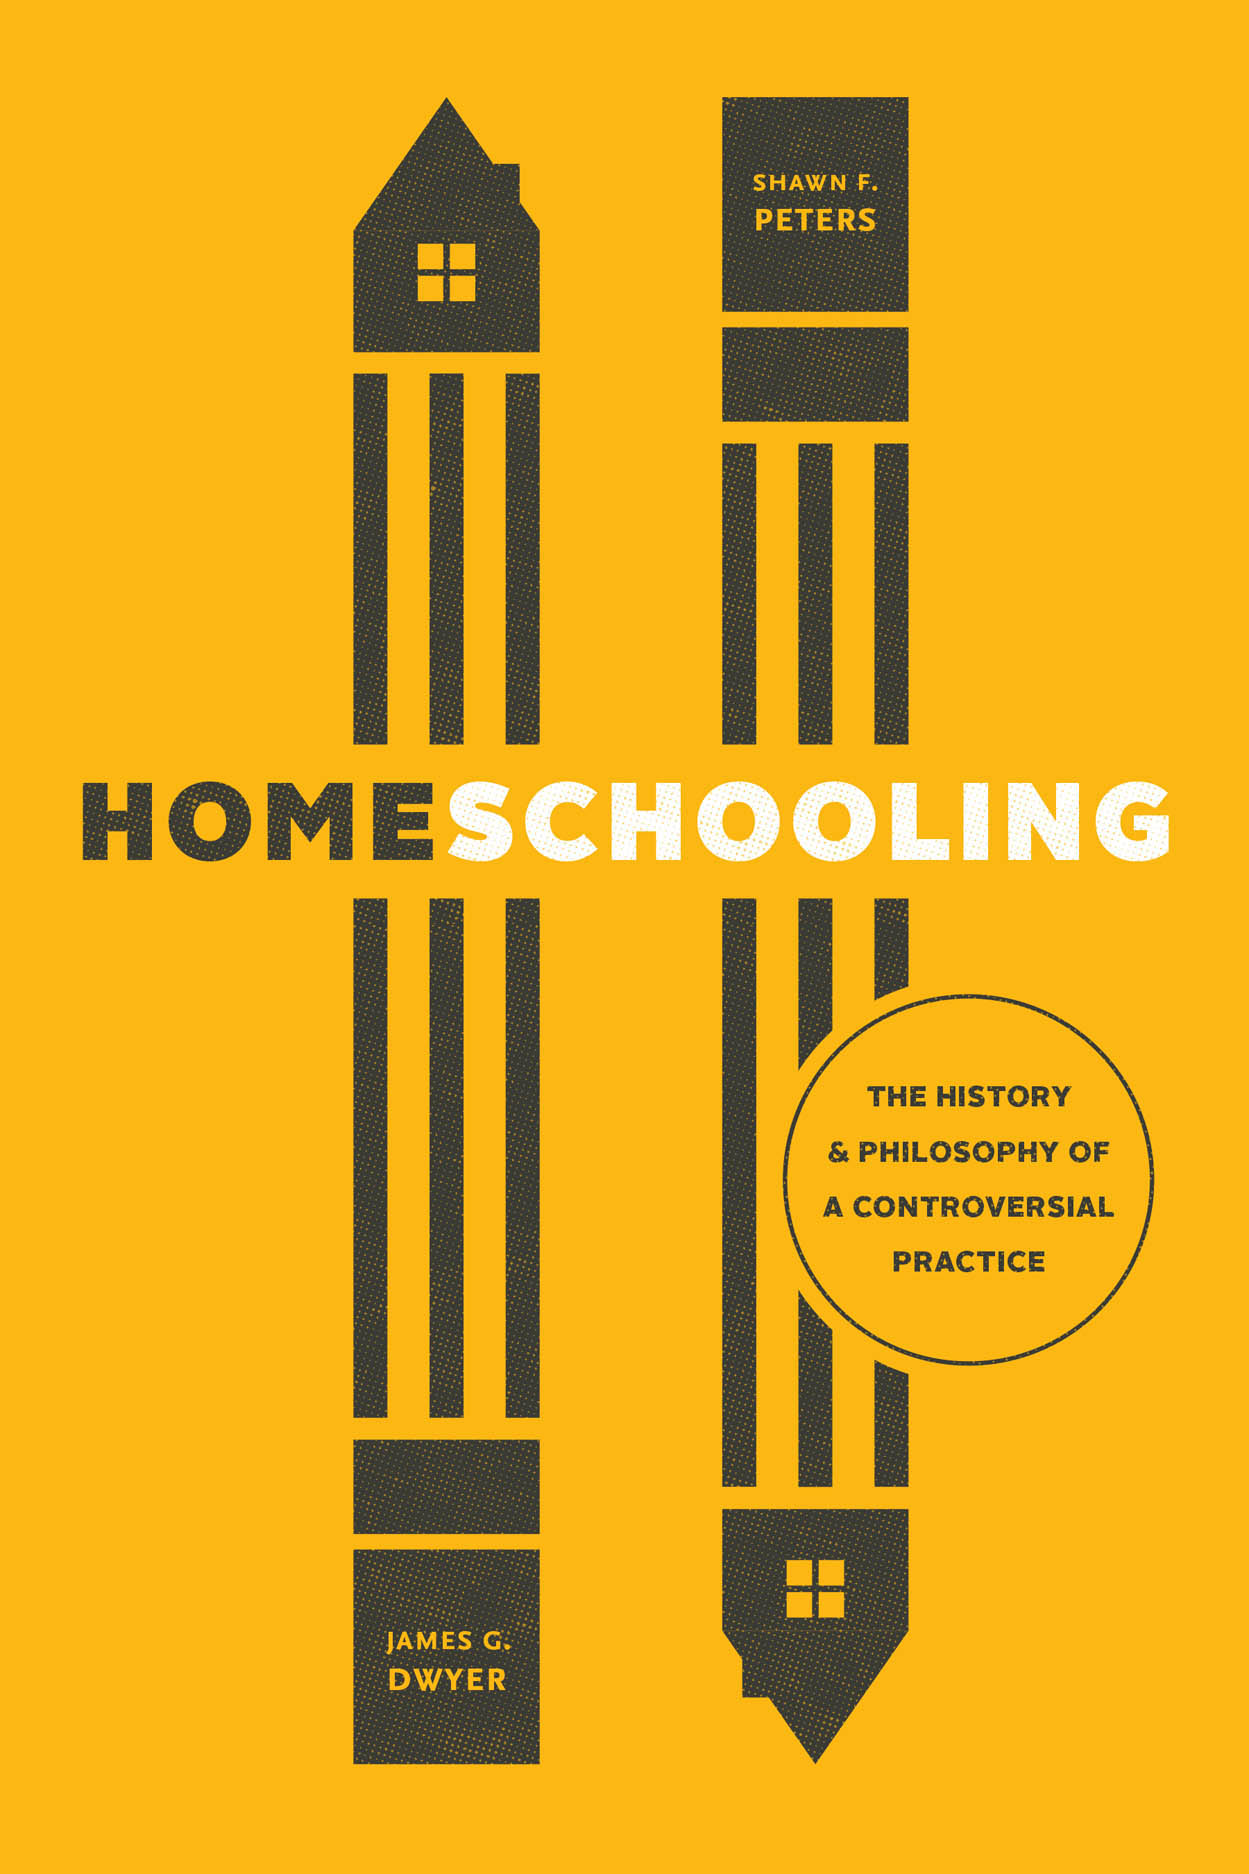 Homeschooling: The History and Philosophy of a Controversial Practice